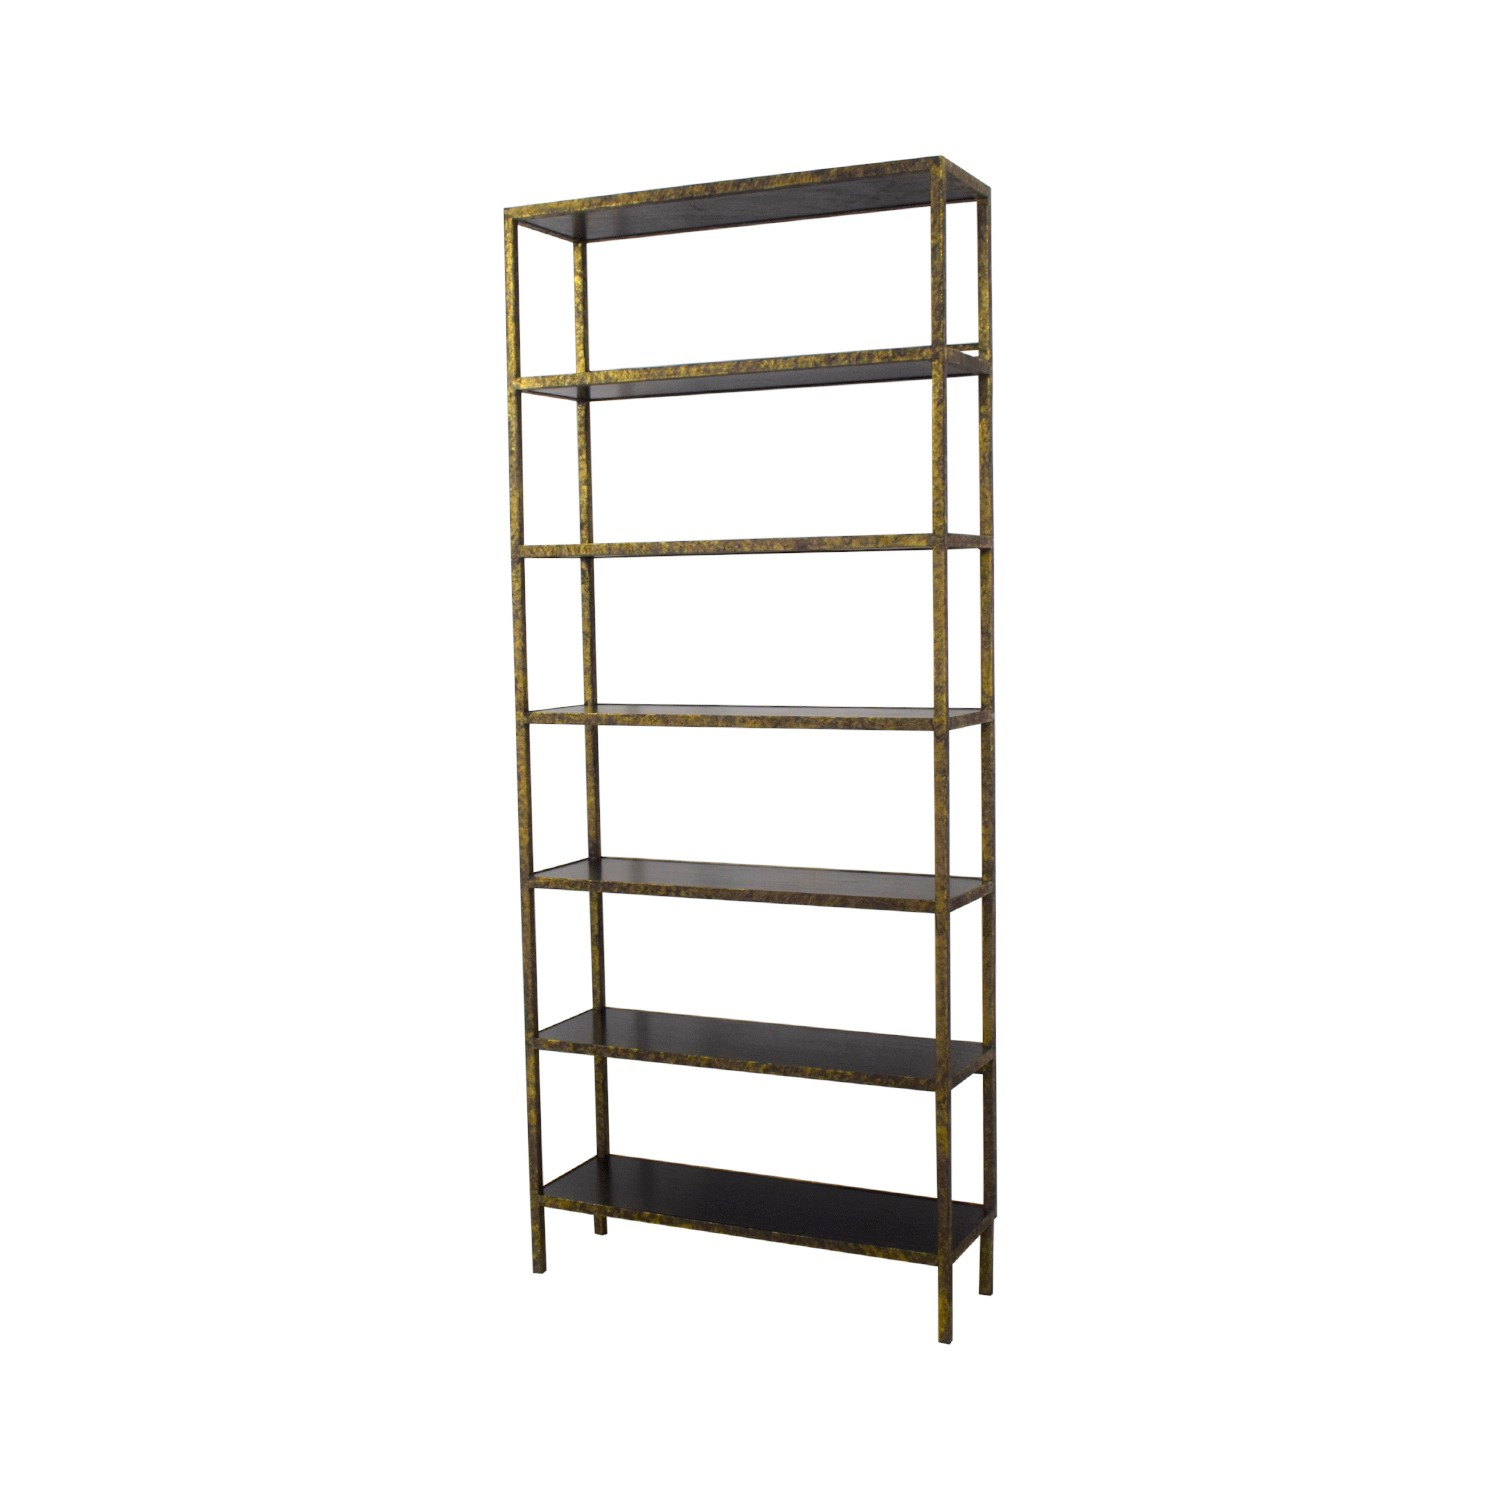 Oly Studio Stella Shelf / Bookcases & Shelving